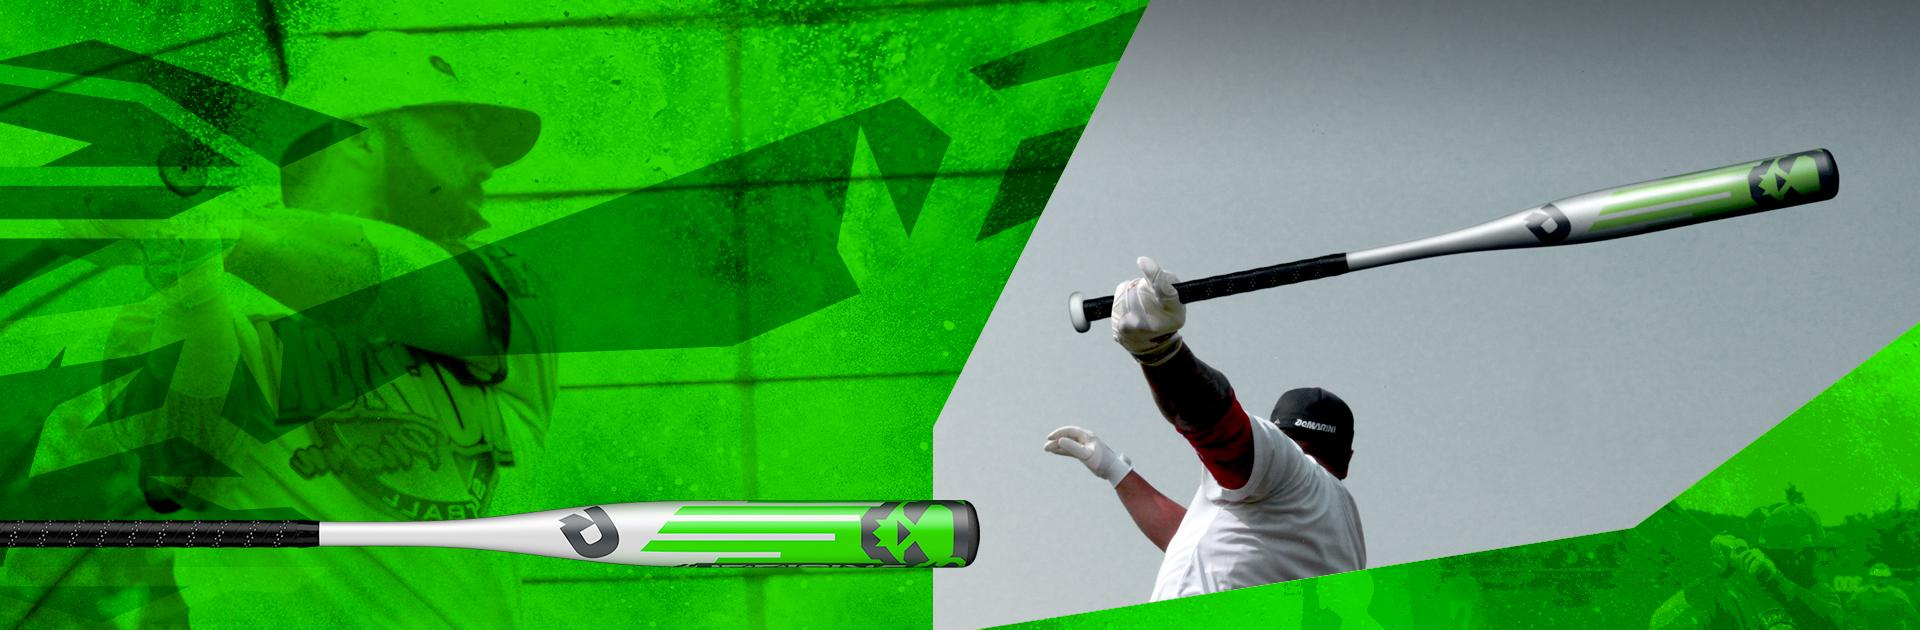 Green banner image with baseball player swinging